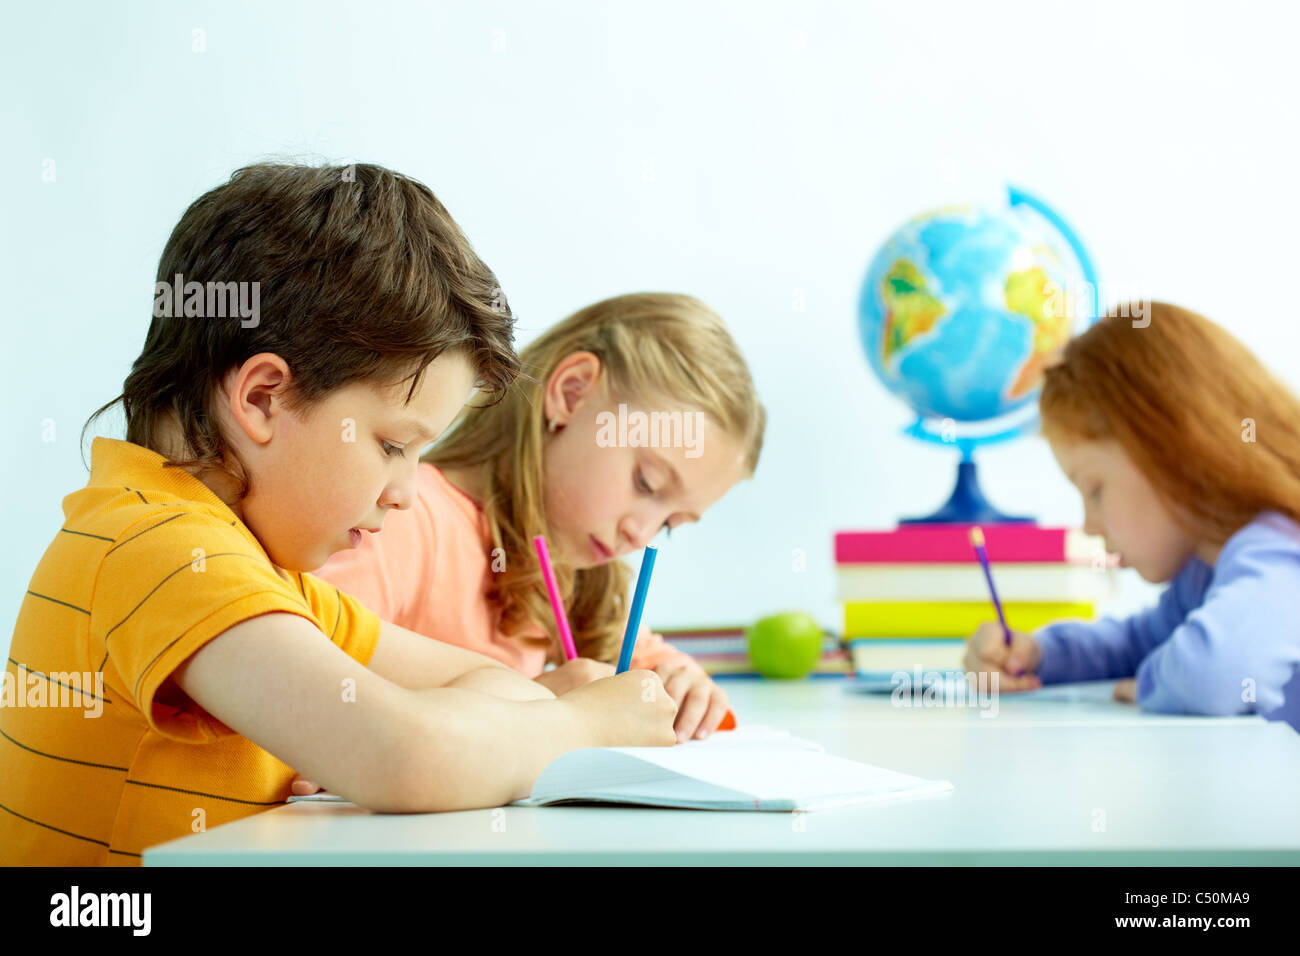 Group of schoolmates drawing at lesson - Stock Image